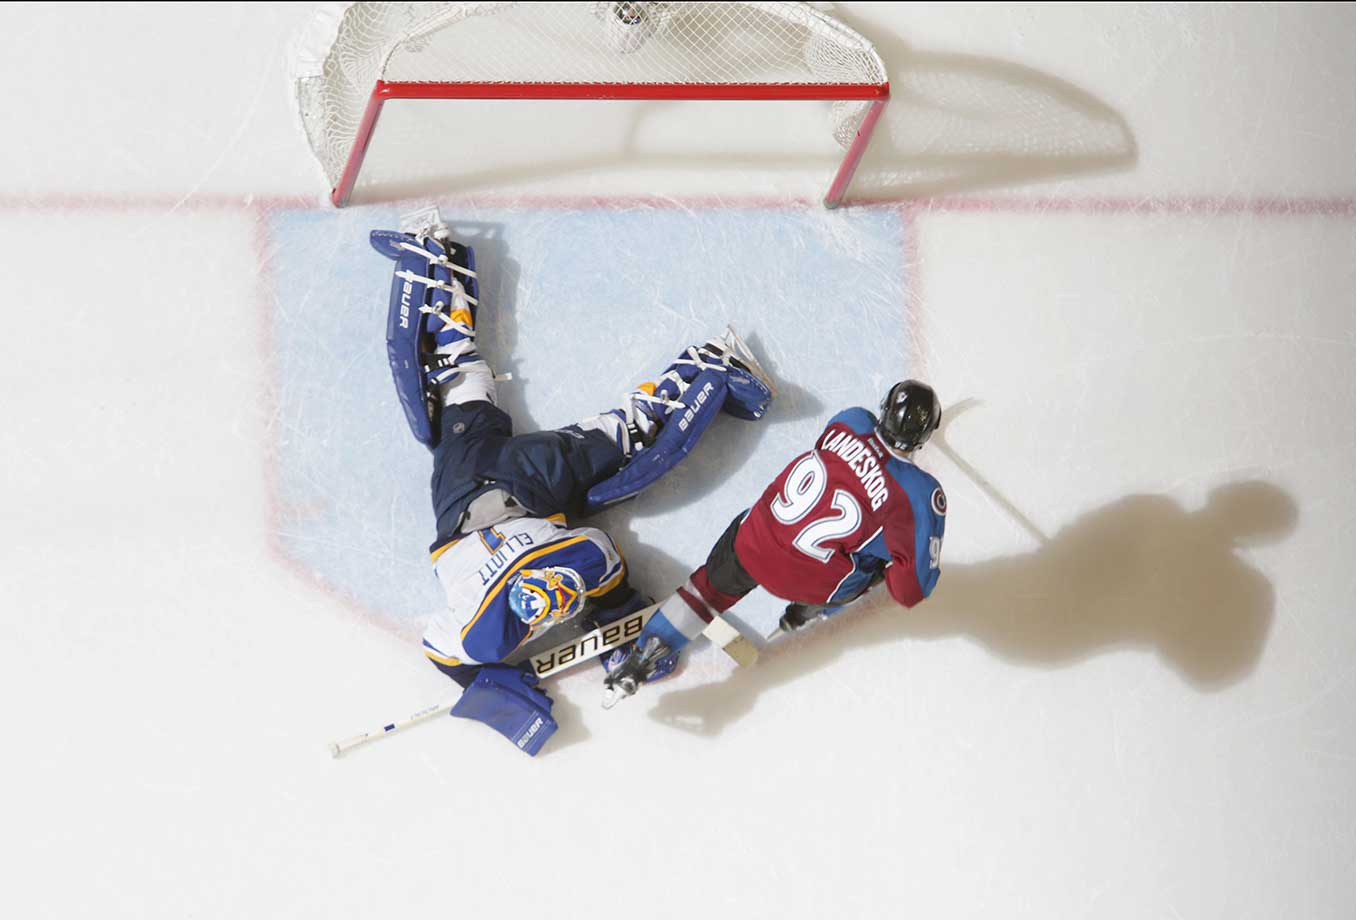 Gabriel Landeskog of the Colorado Avalanche scores the game-winning goal in the shootout against Brian Elliott of the St. Louis Blues at the Pepsi Center in Denver. The Avalanche defeated the Blues 2-1 in a shootout.